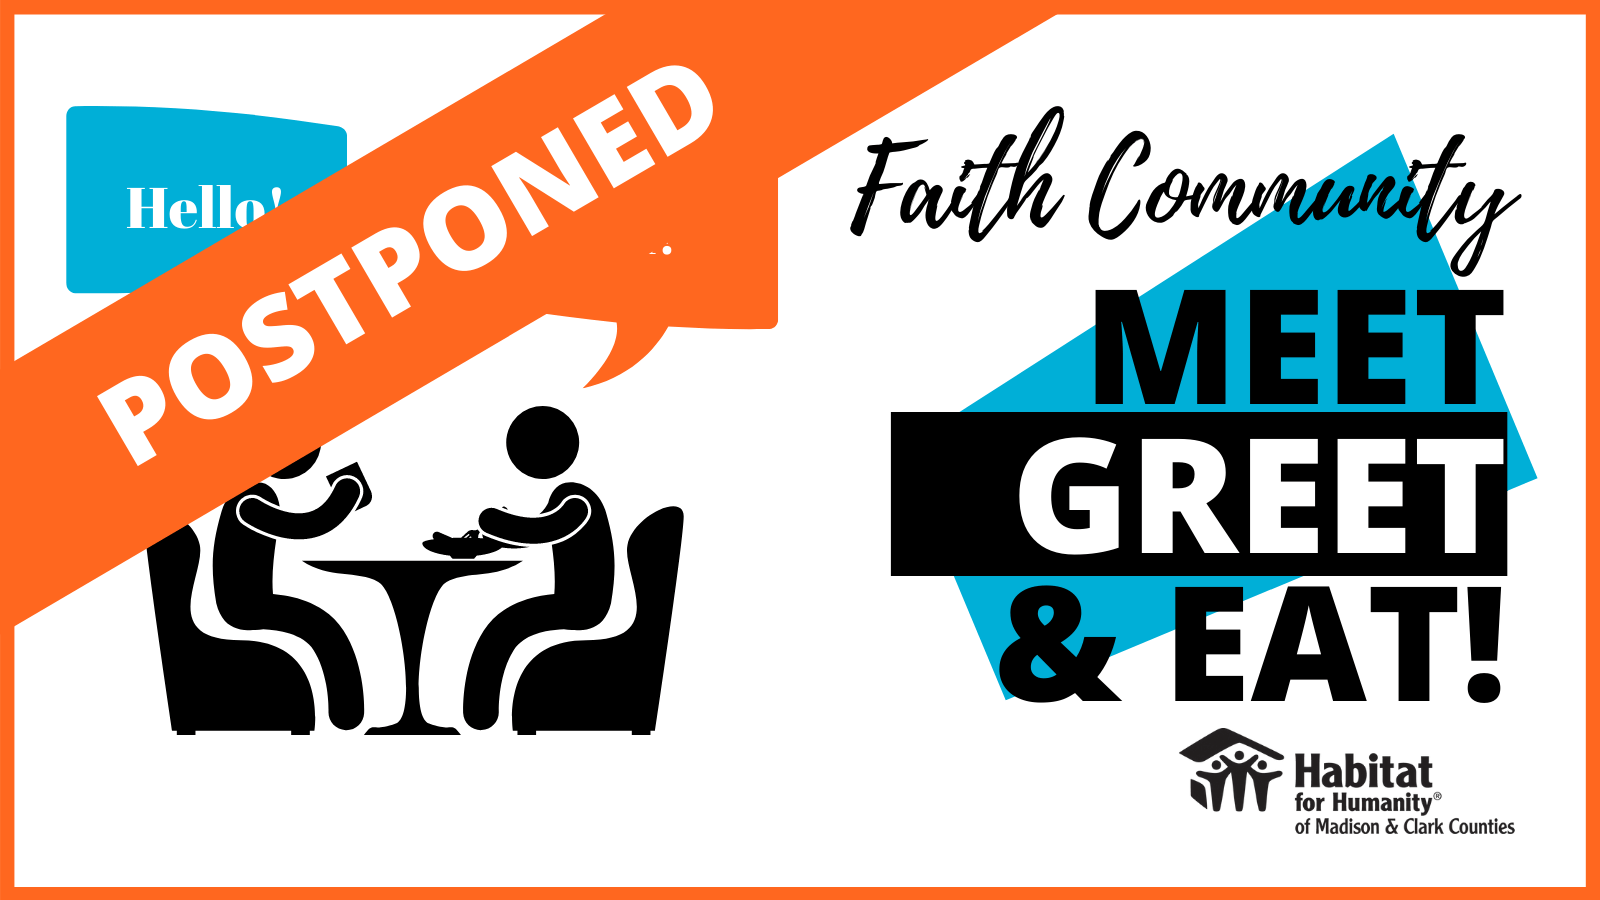 Faith Community Meet, Greet & Eat